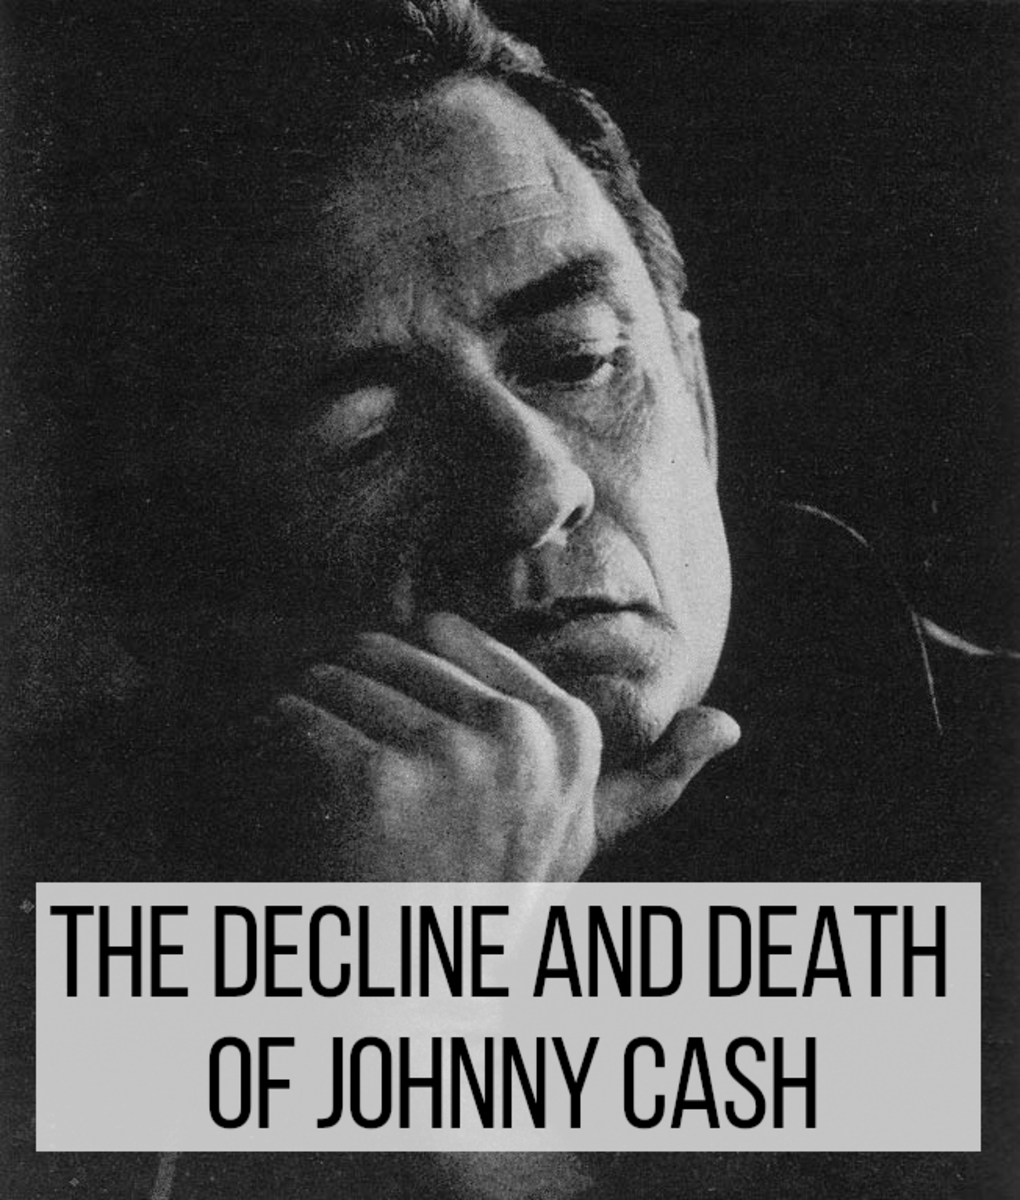 The Health Decline and Death of Johnny Cash